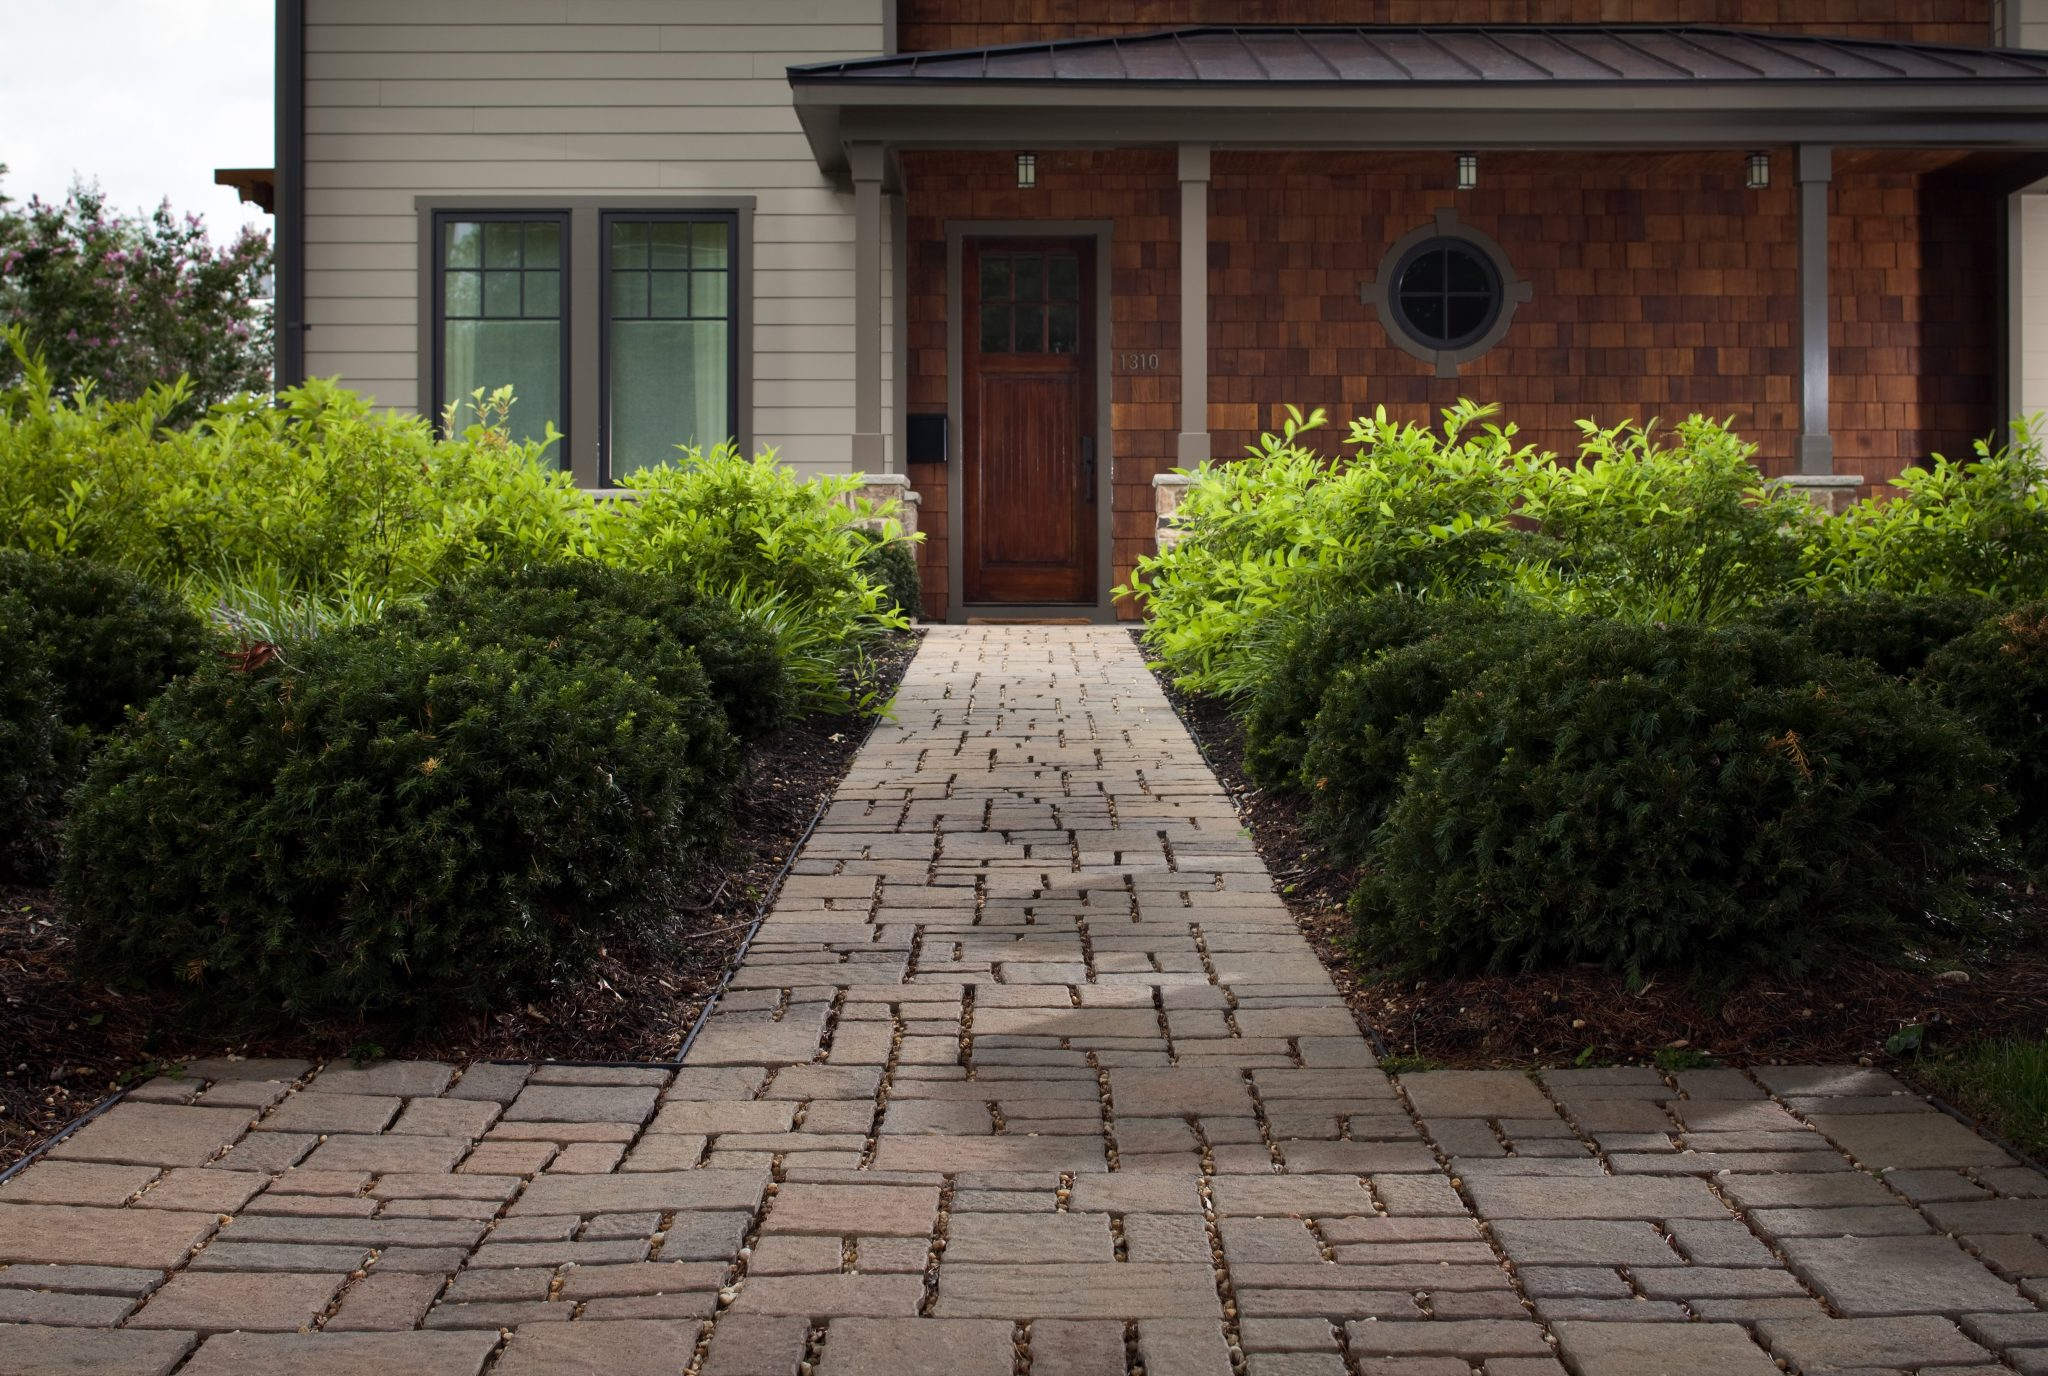 Paver Walkway Designs Simple Walkway Materials Guide Top Ideas  Designs  Installitdirect